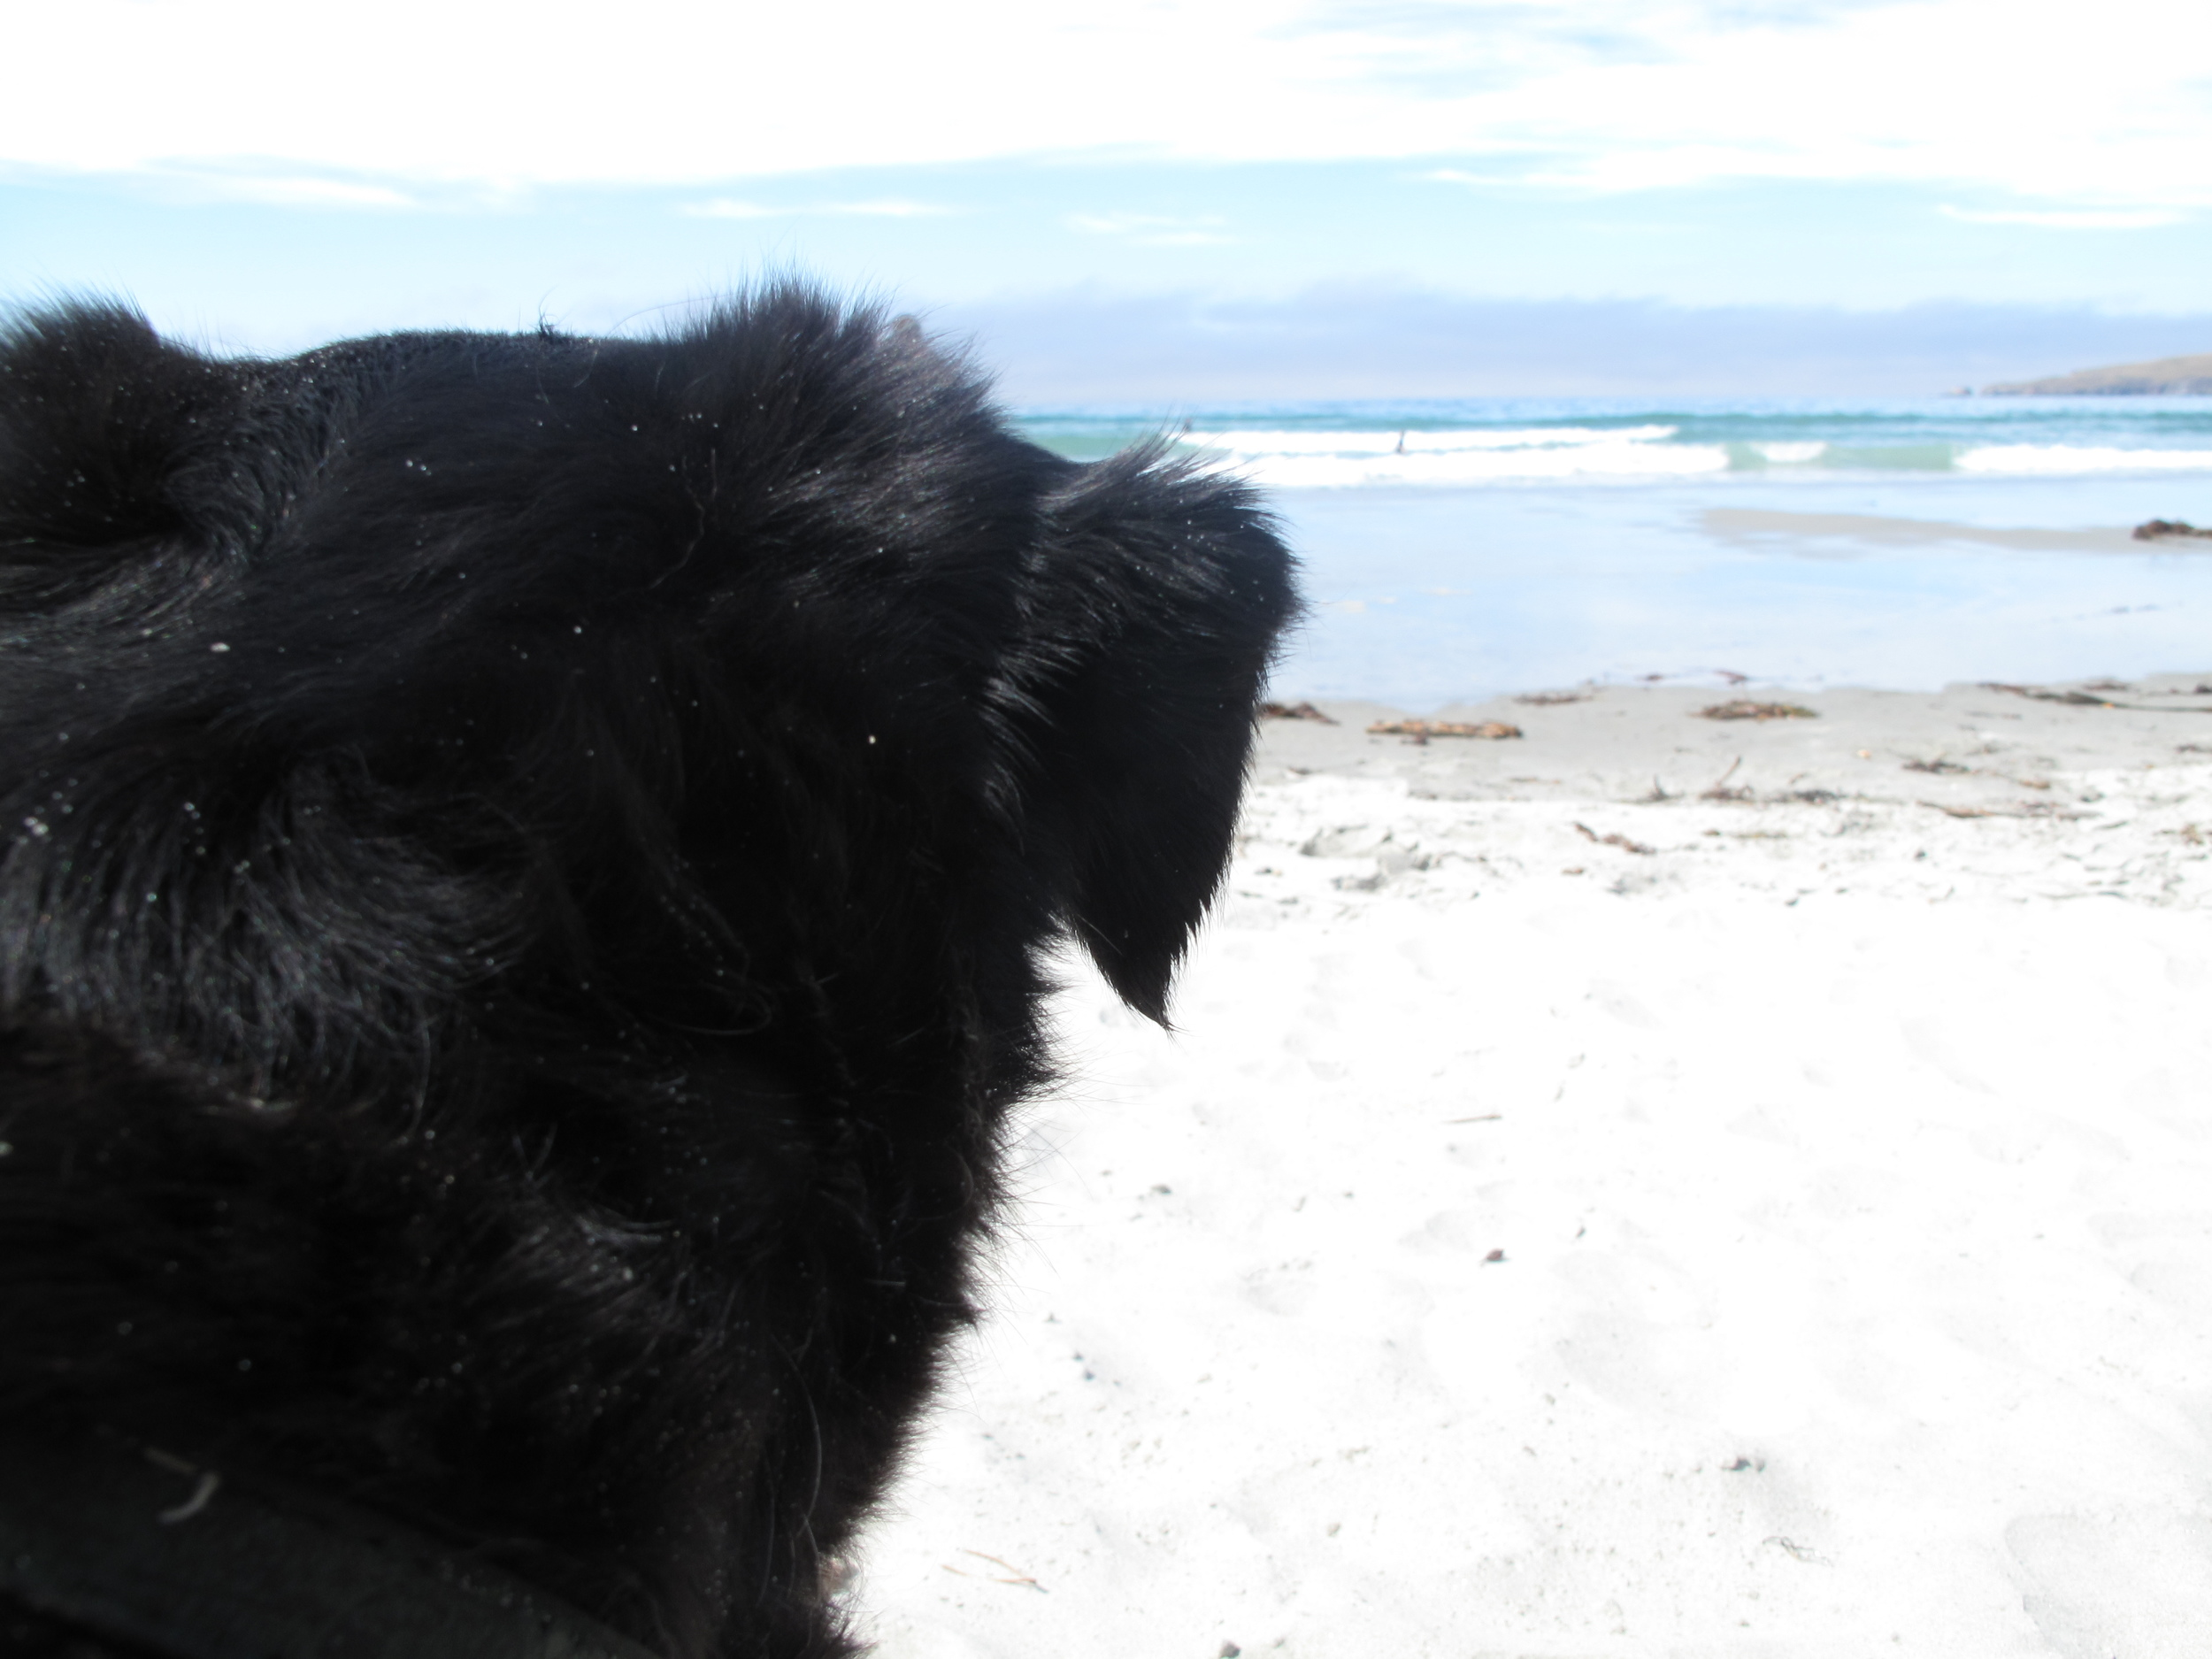 Dog at the beach watching the waves